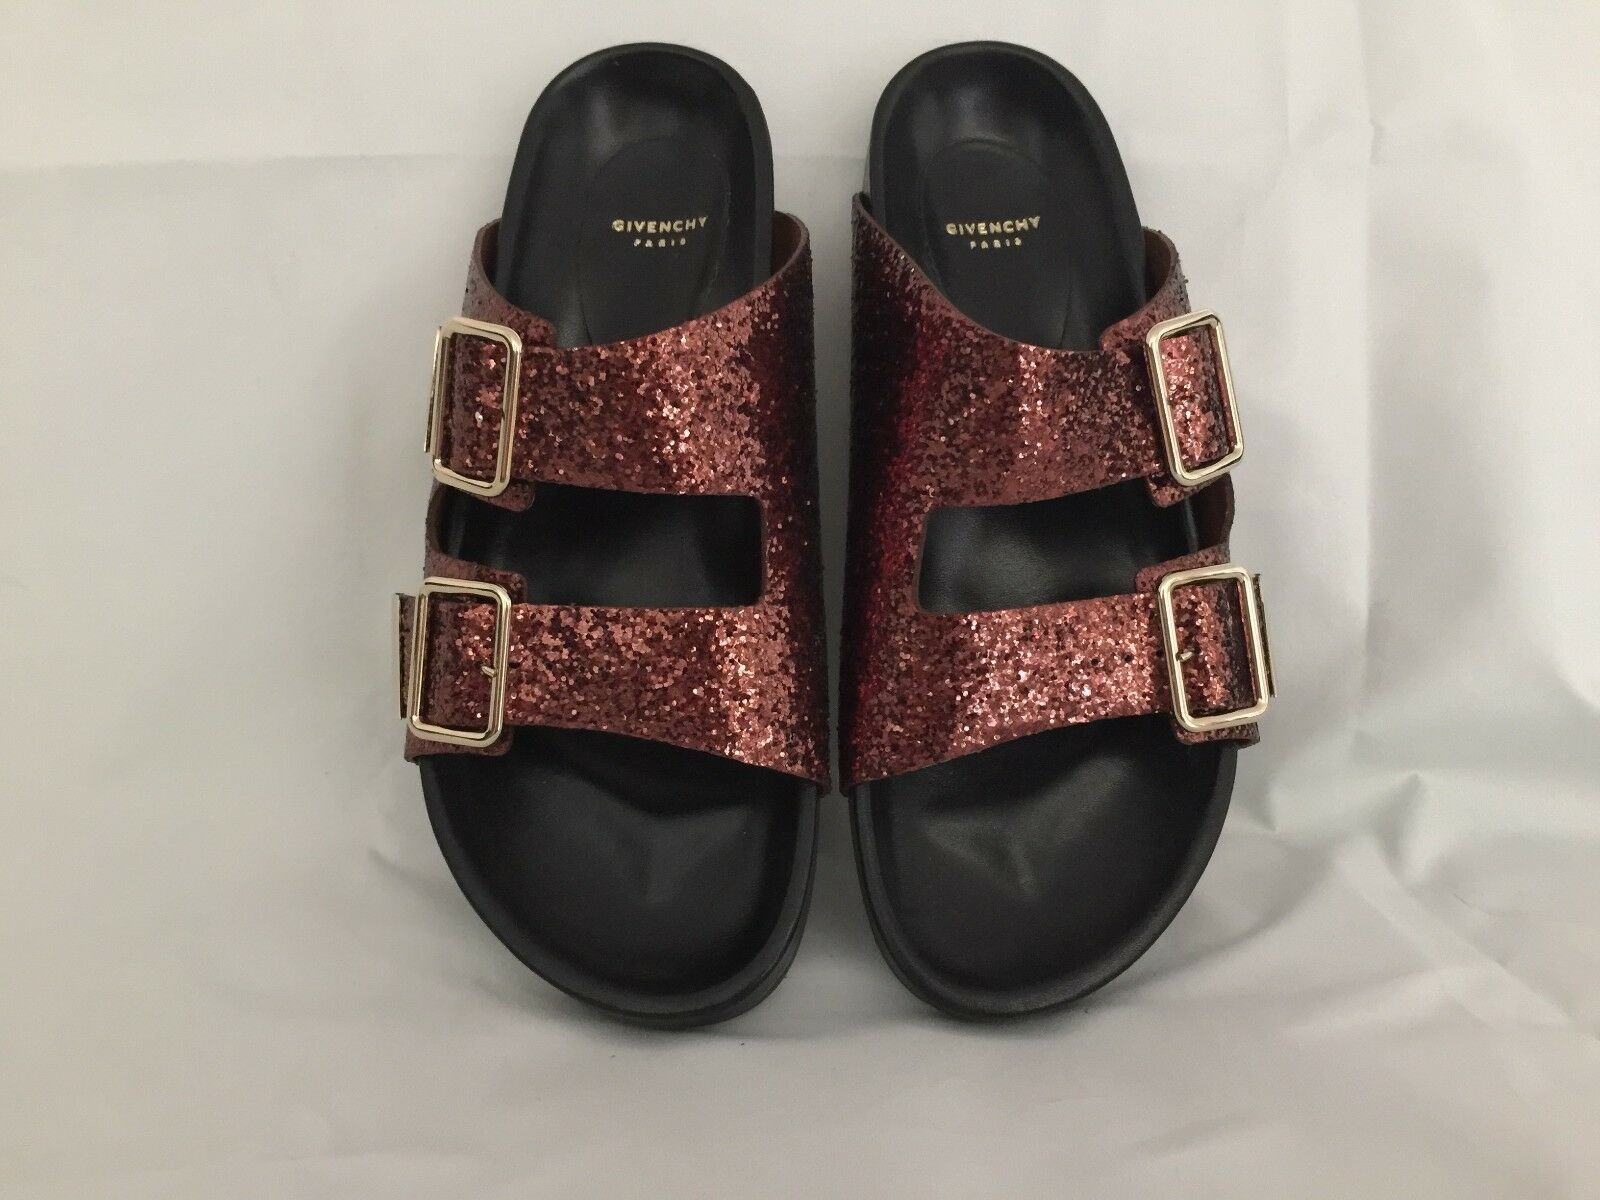 Givenchy Givenchy Givenchy Women's Bronze Swiss Glitter Double-buckle Sandal 38 b8b58e